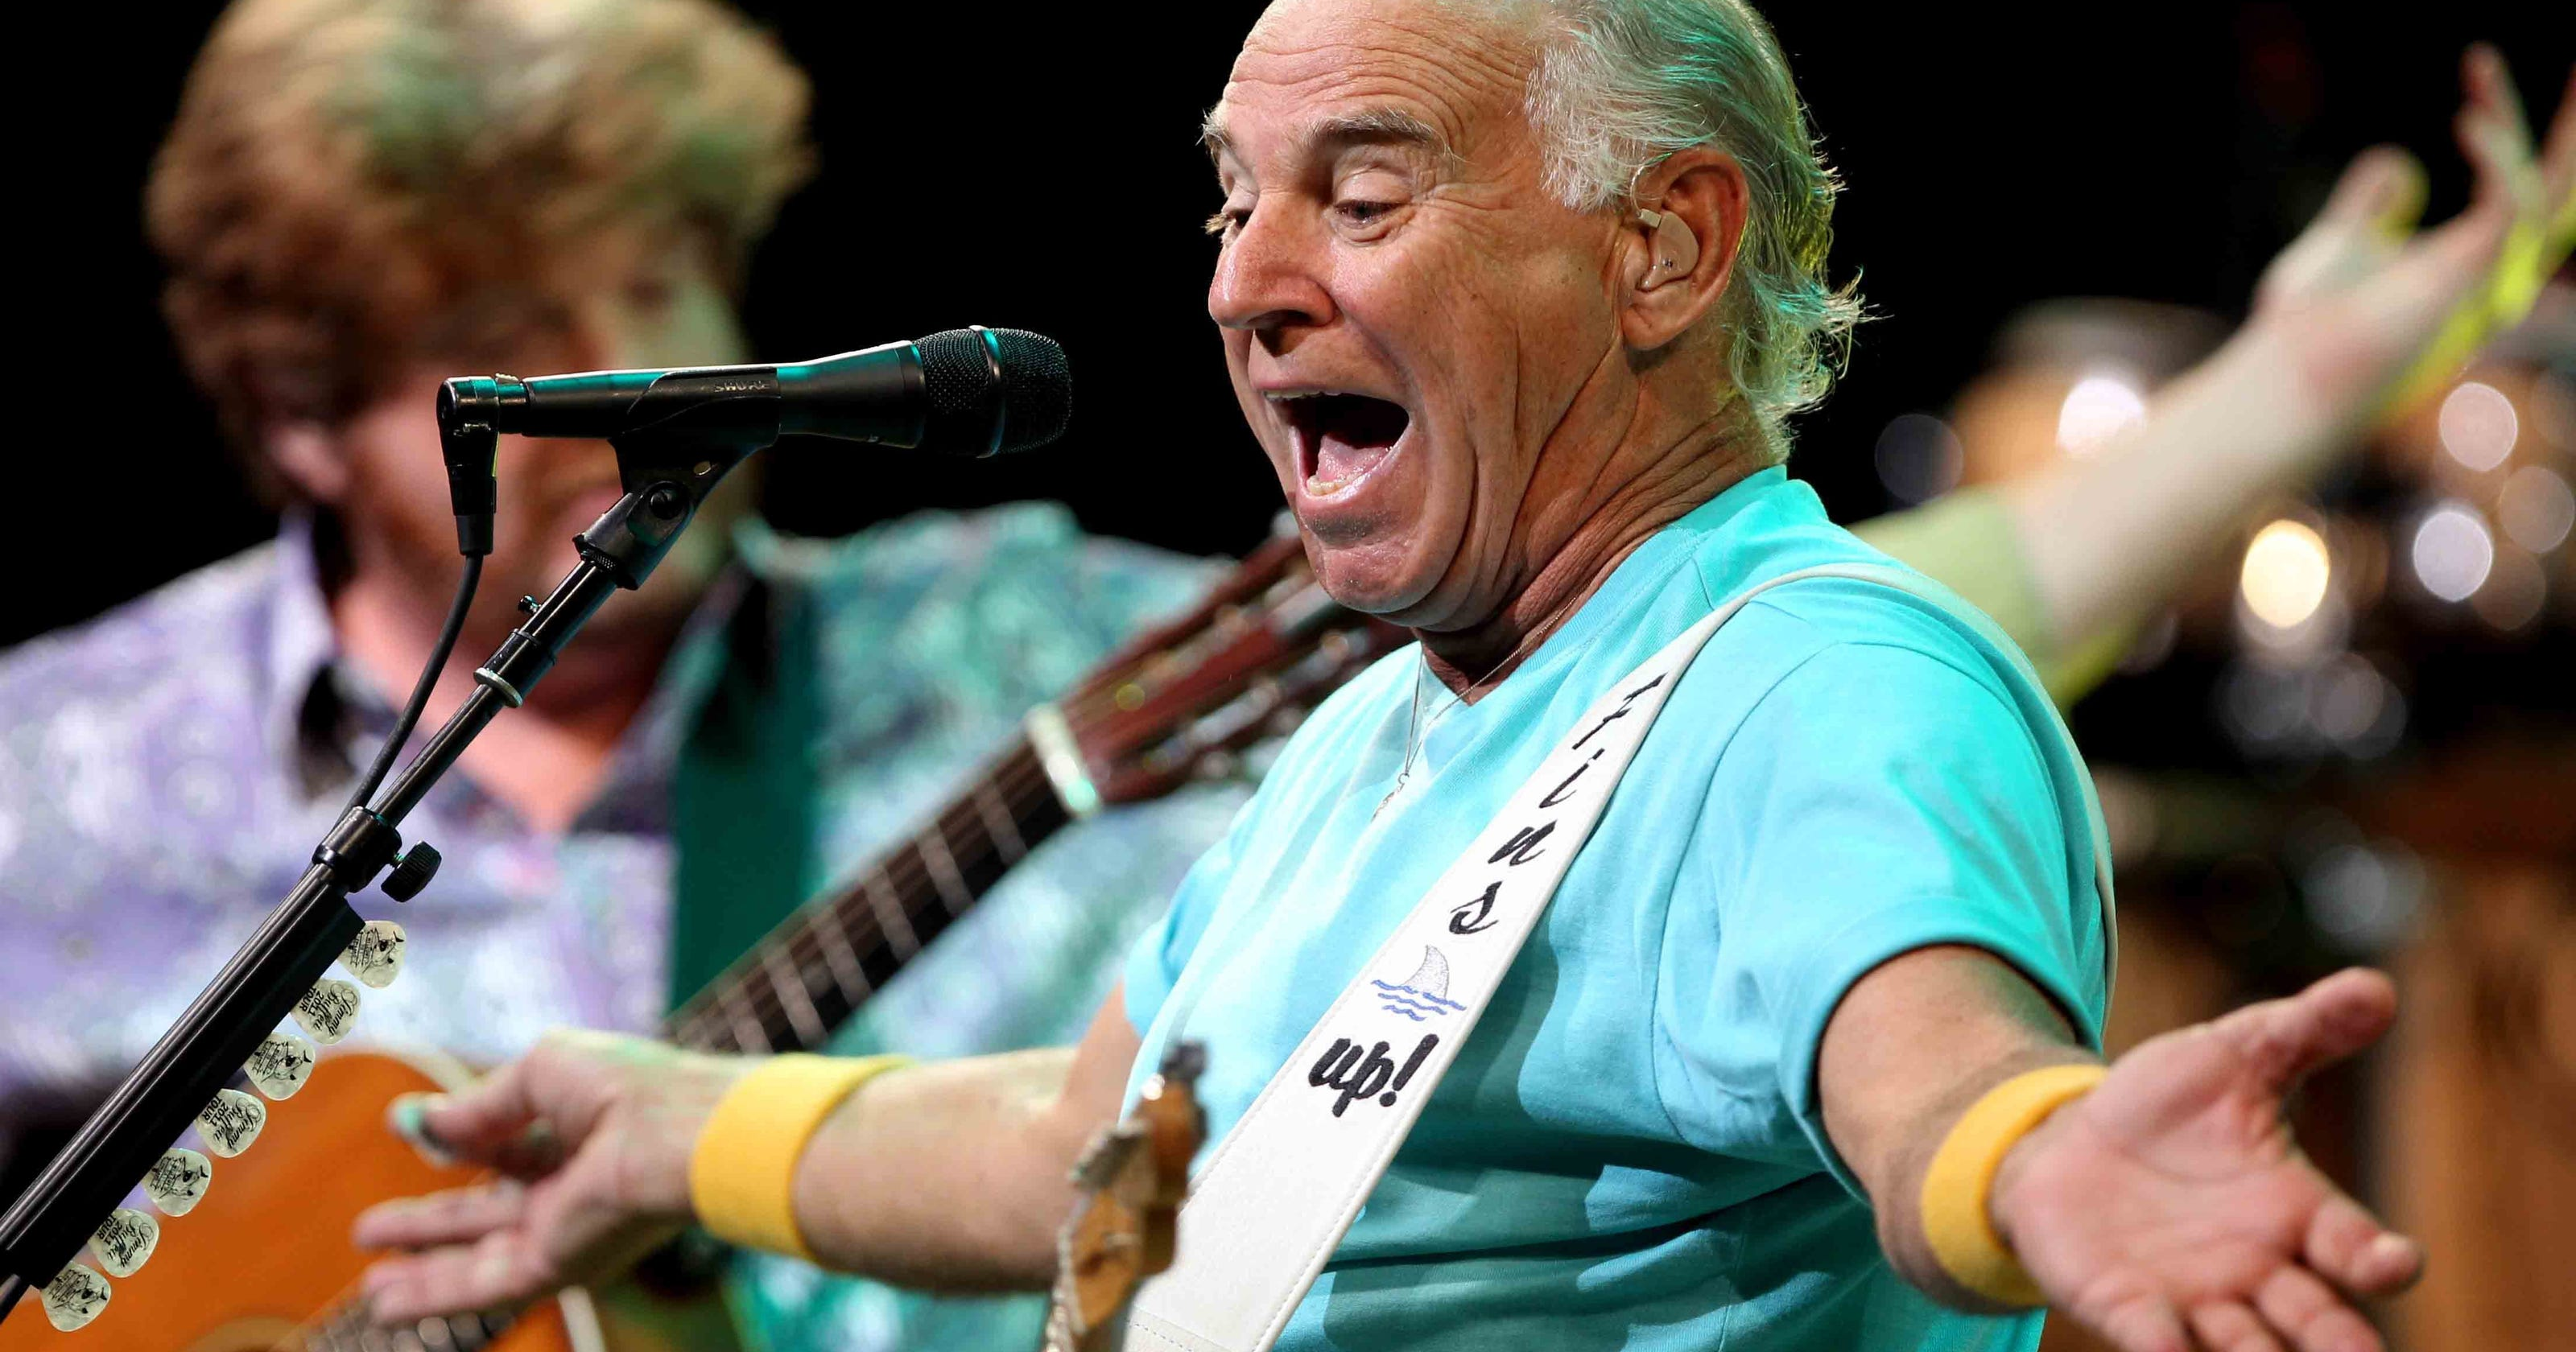 Jimmy Buffett launches Coral Reefer marijuana brand with